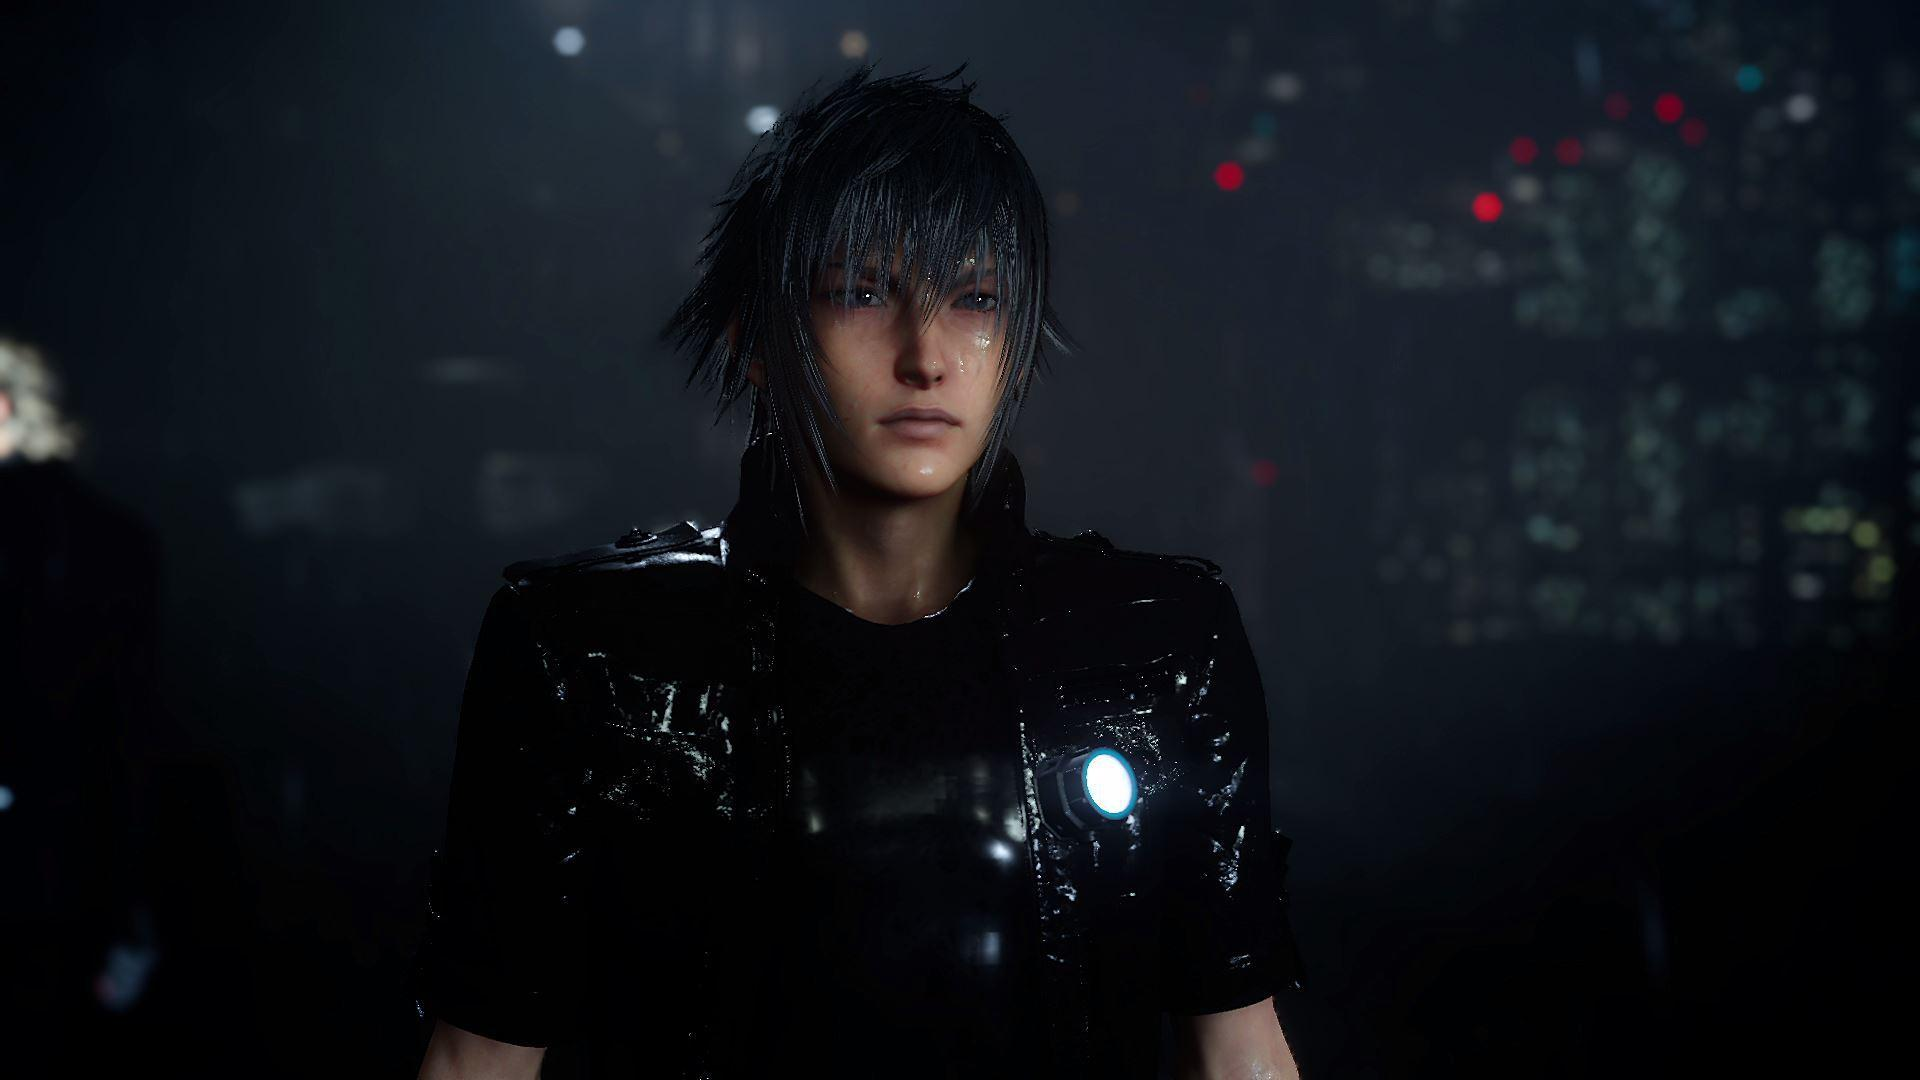 Final Fantasy XV Wallpapers Image Photos Pictures Backgrounds